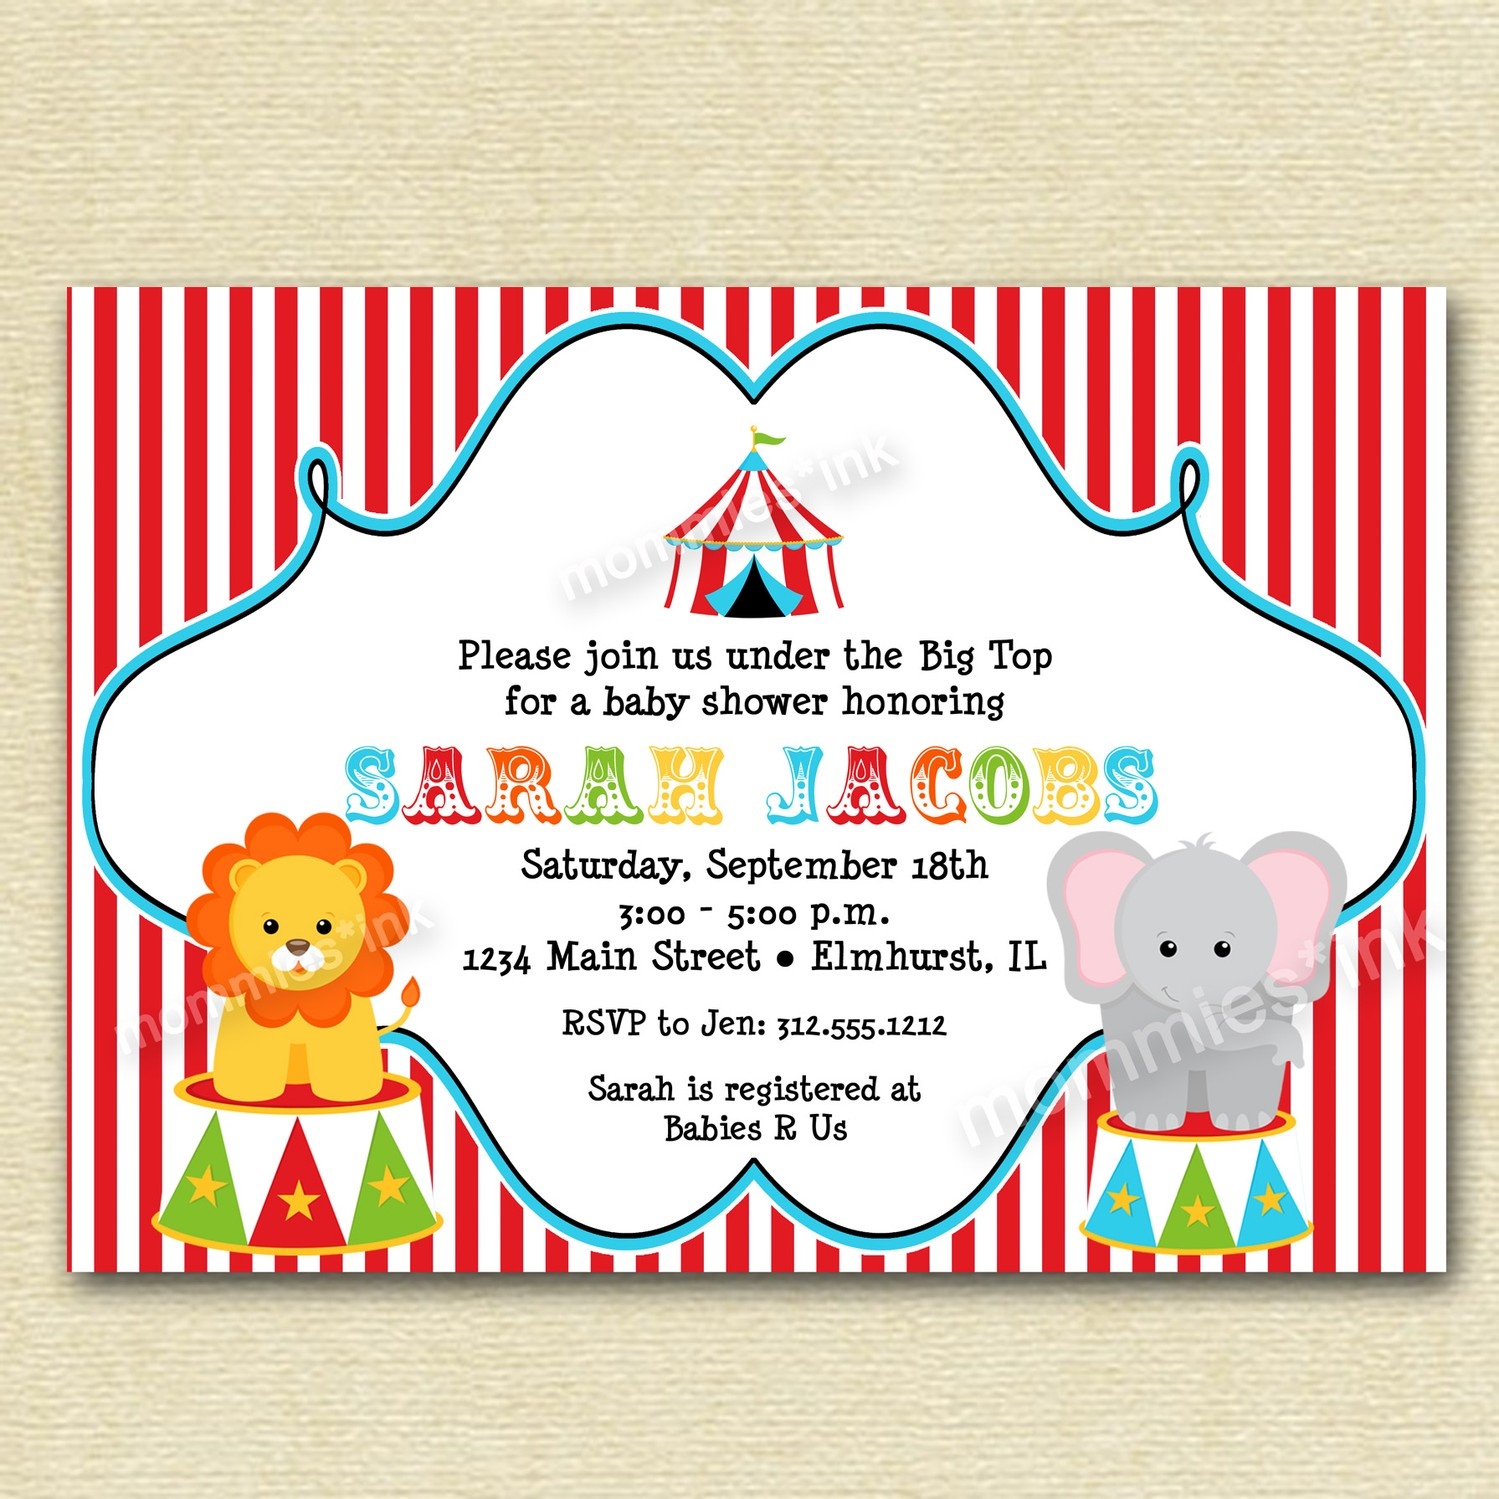 carnival themed birthday invitation wording ; Carnival-Birthday-Party-Invitations-Free-to-get-ideas-how-to-make-your-own-birthday-Invitation-design-1